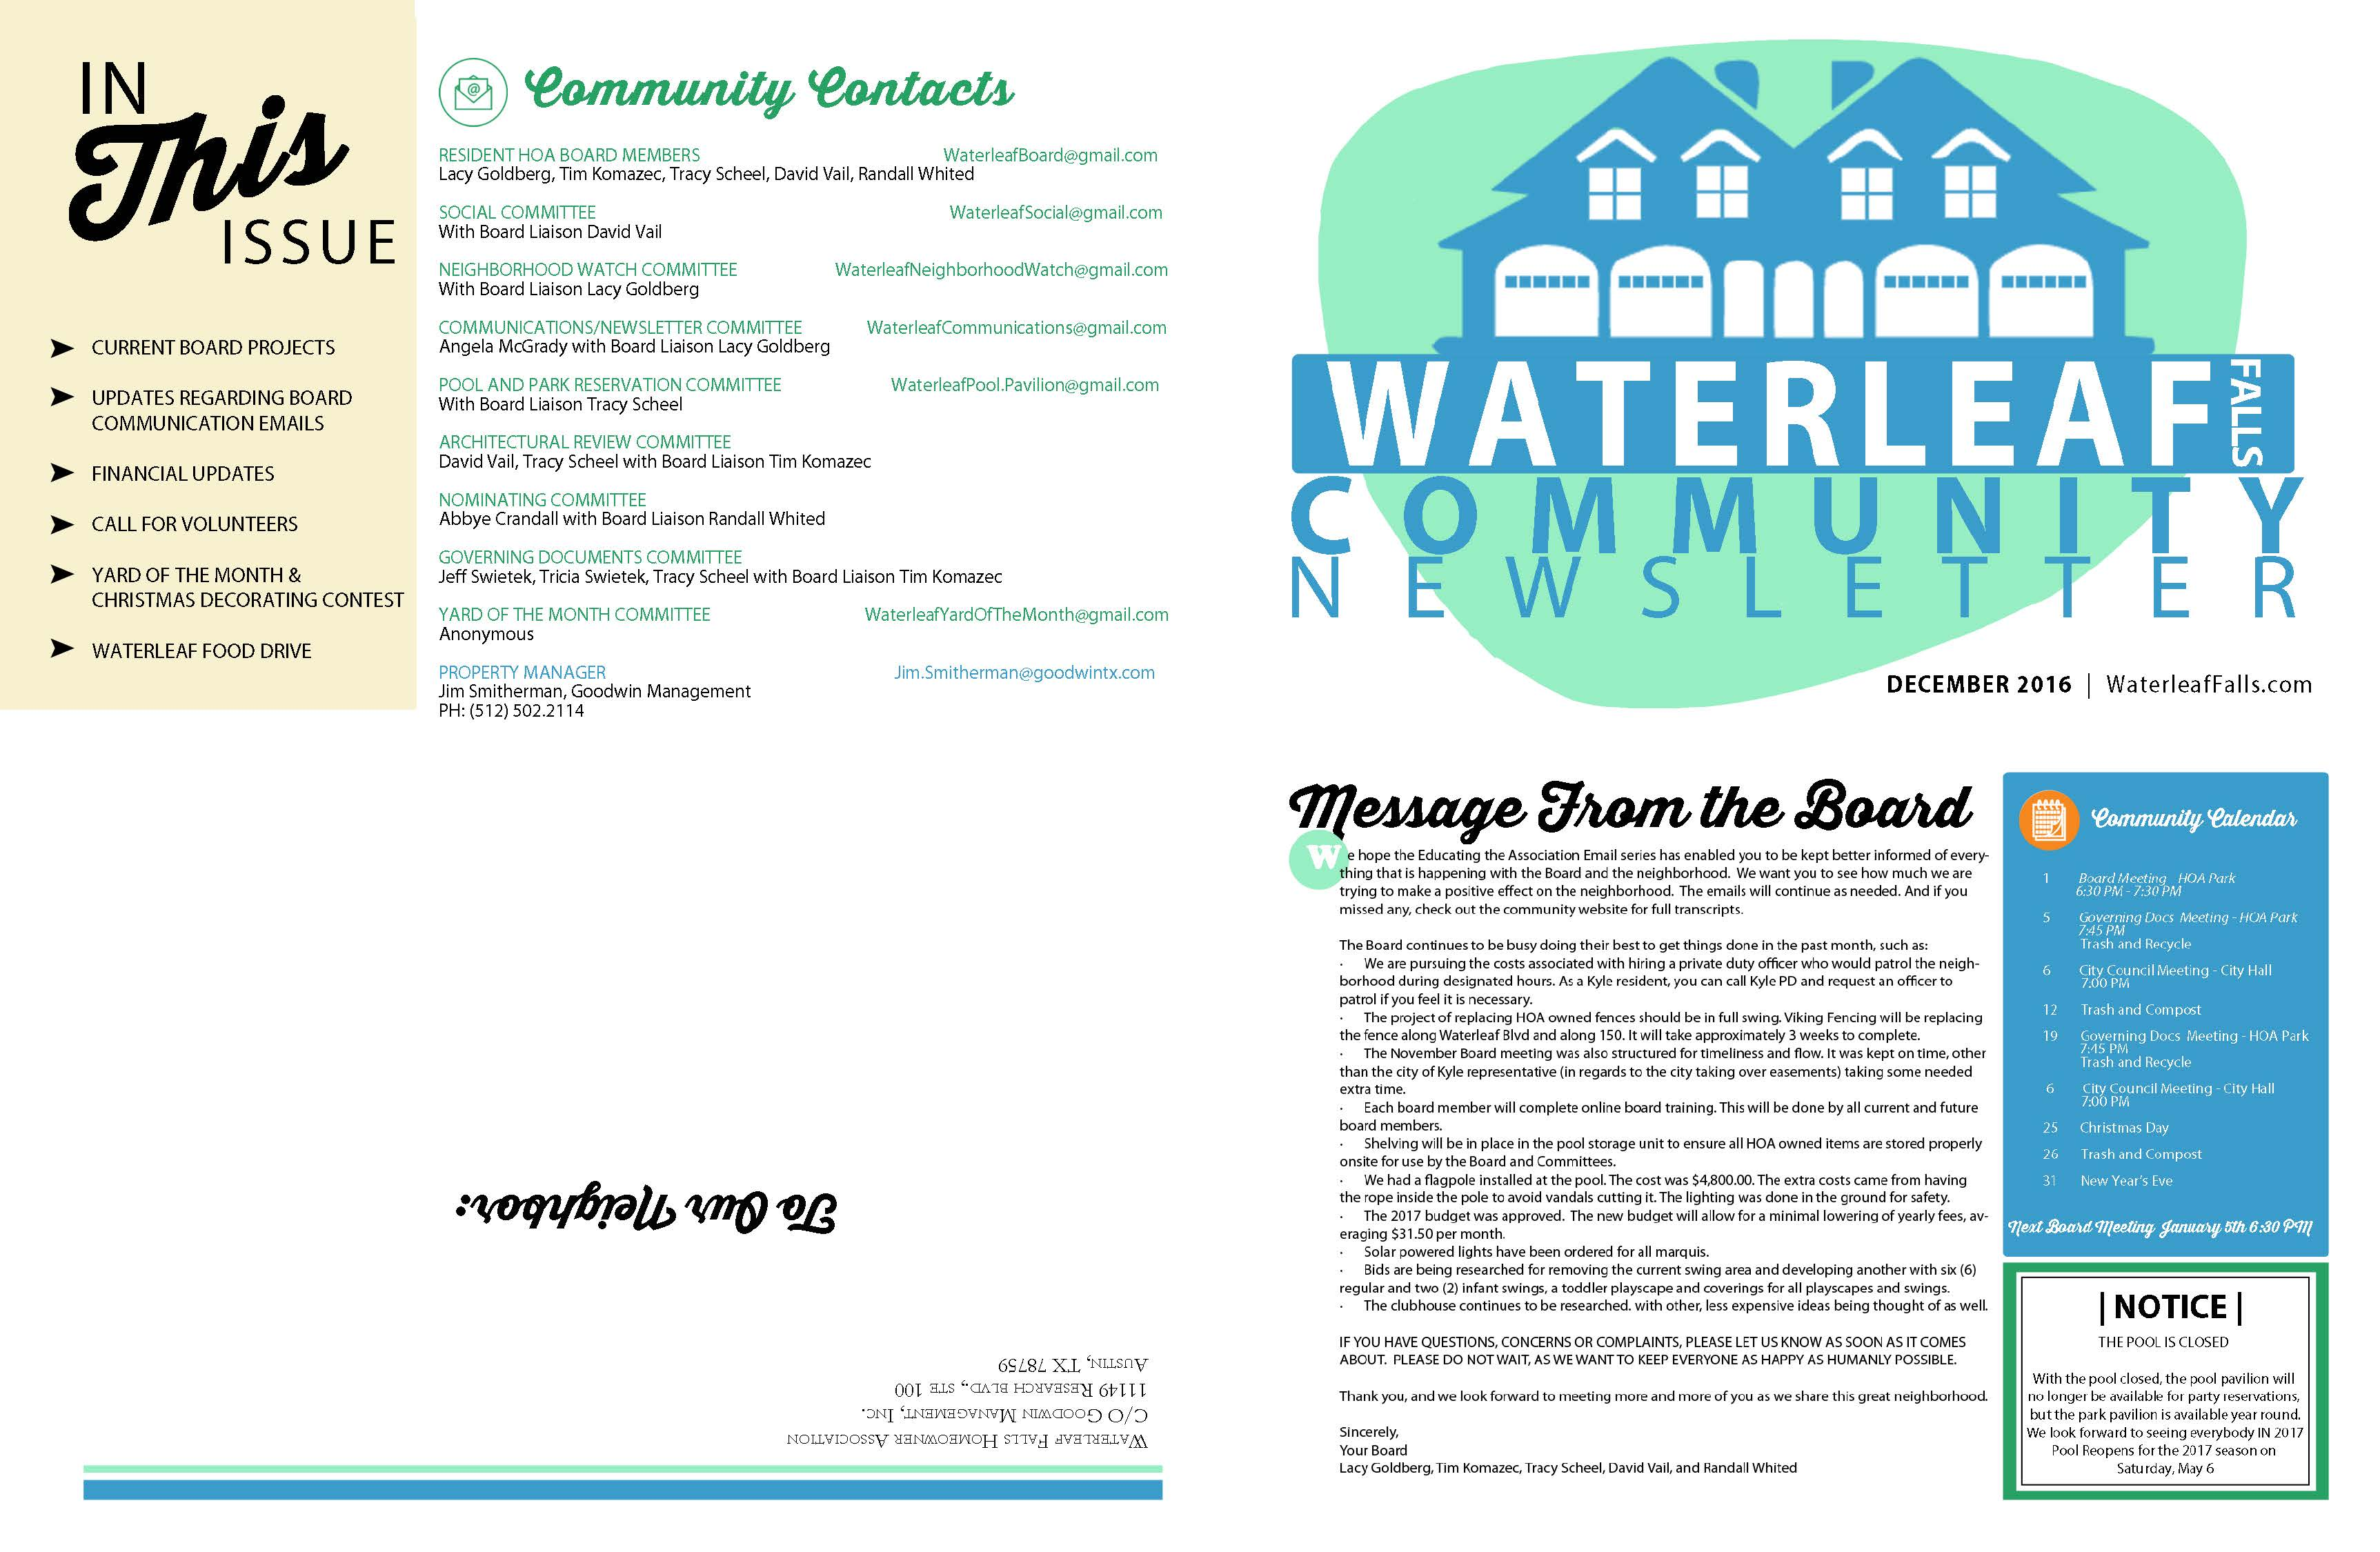 newsletter format update waterleaf falls